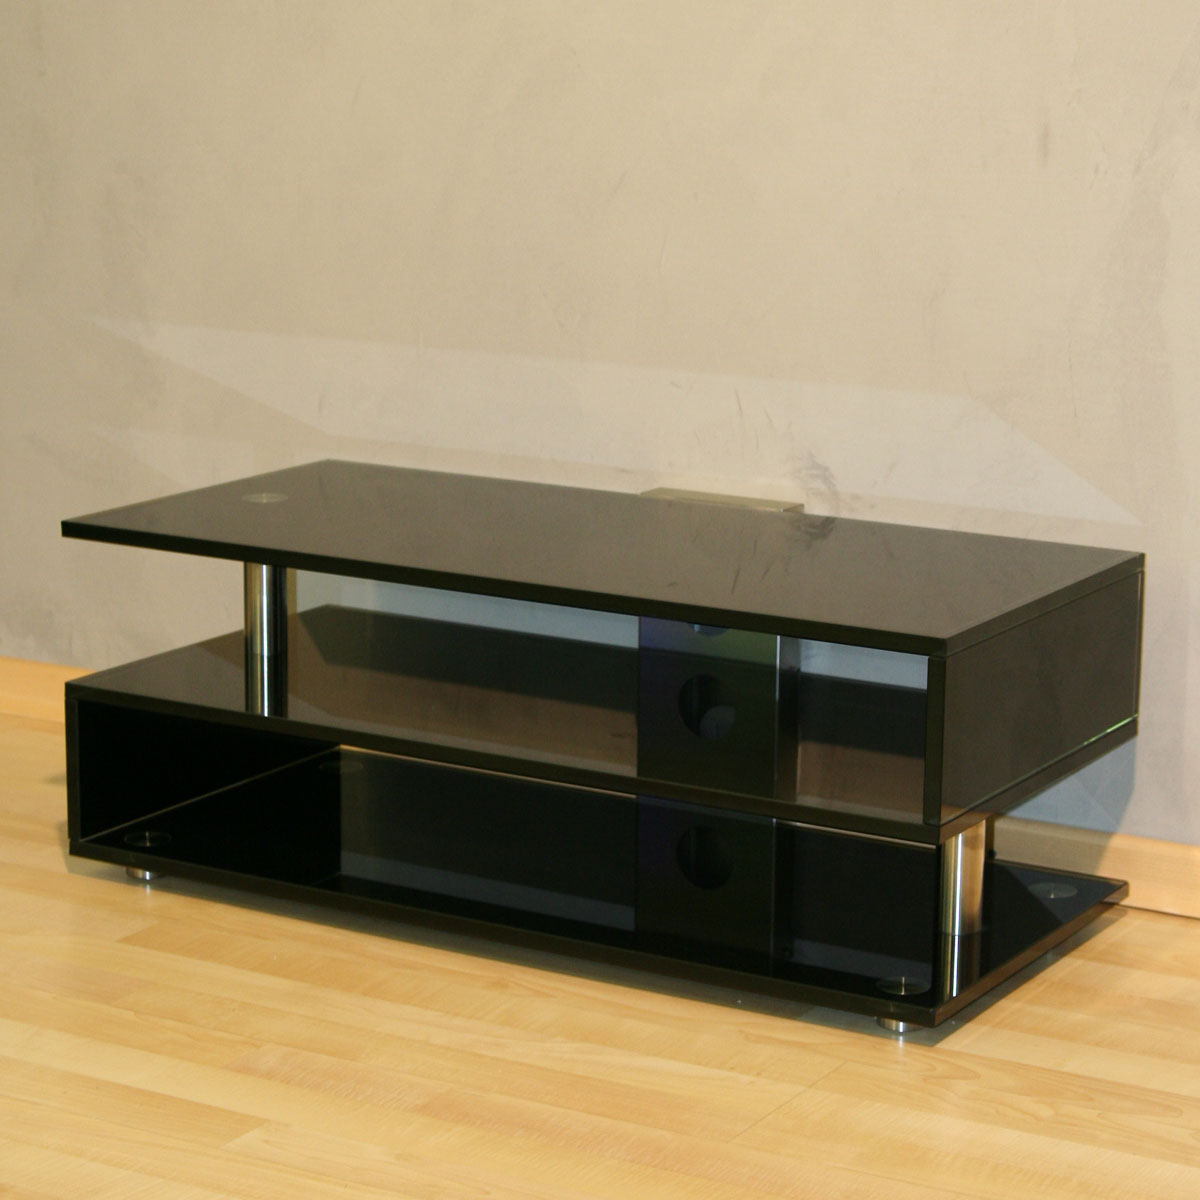 glass concept bei hifi tv seite 1. Black Bedroom Furniture Sets. Home Design Ideas